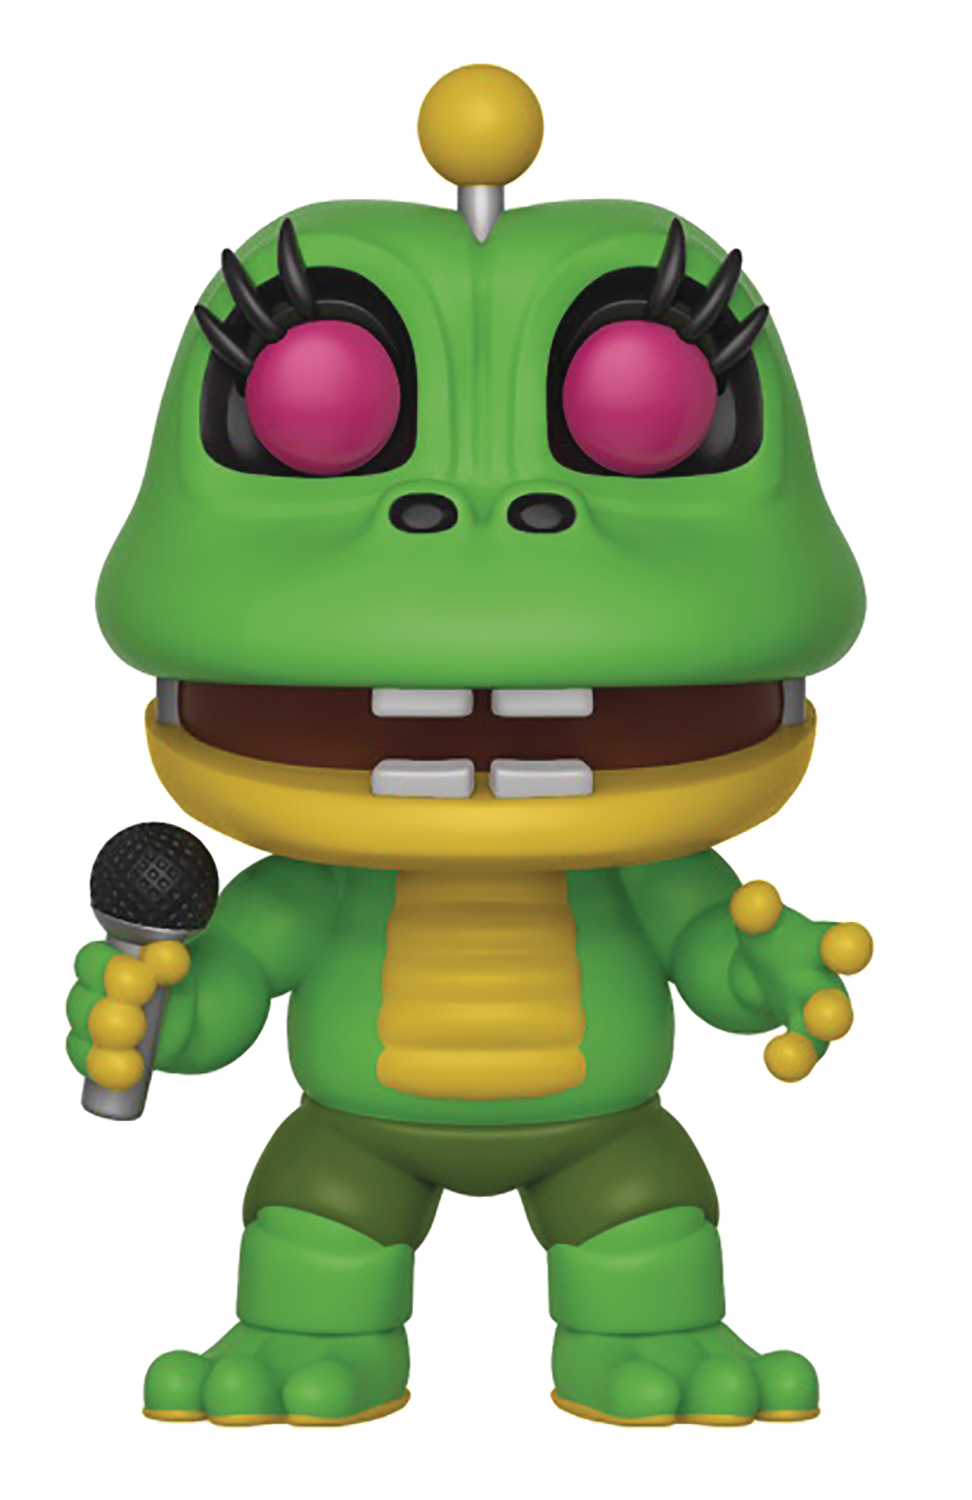 MAY188052 - POP GAMES FNAF 6 PIZZA SIM HAPPY FROG VIN FIG